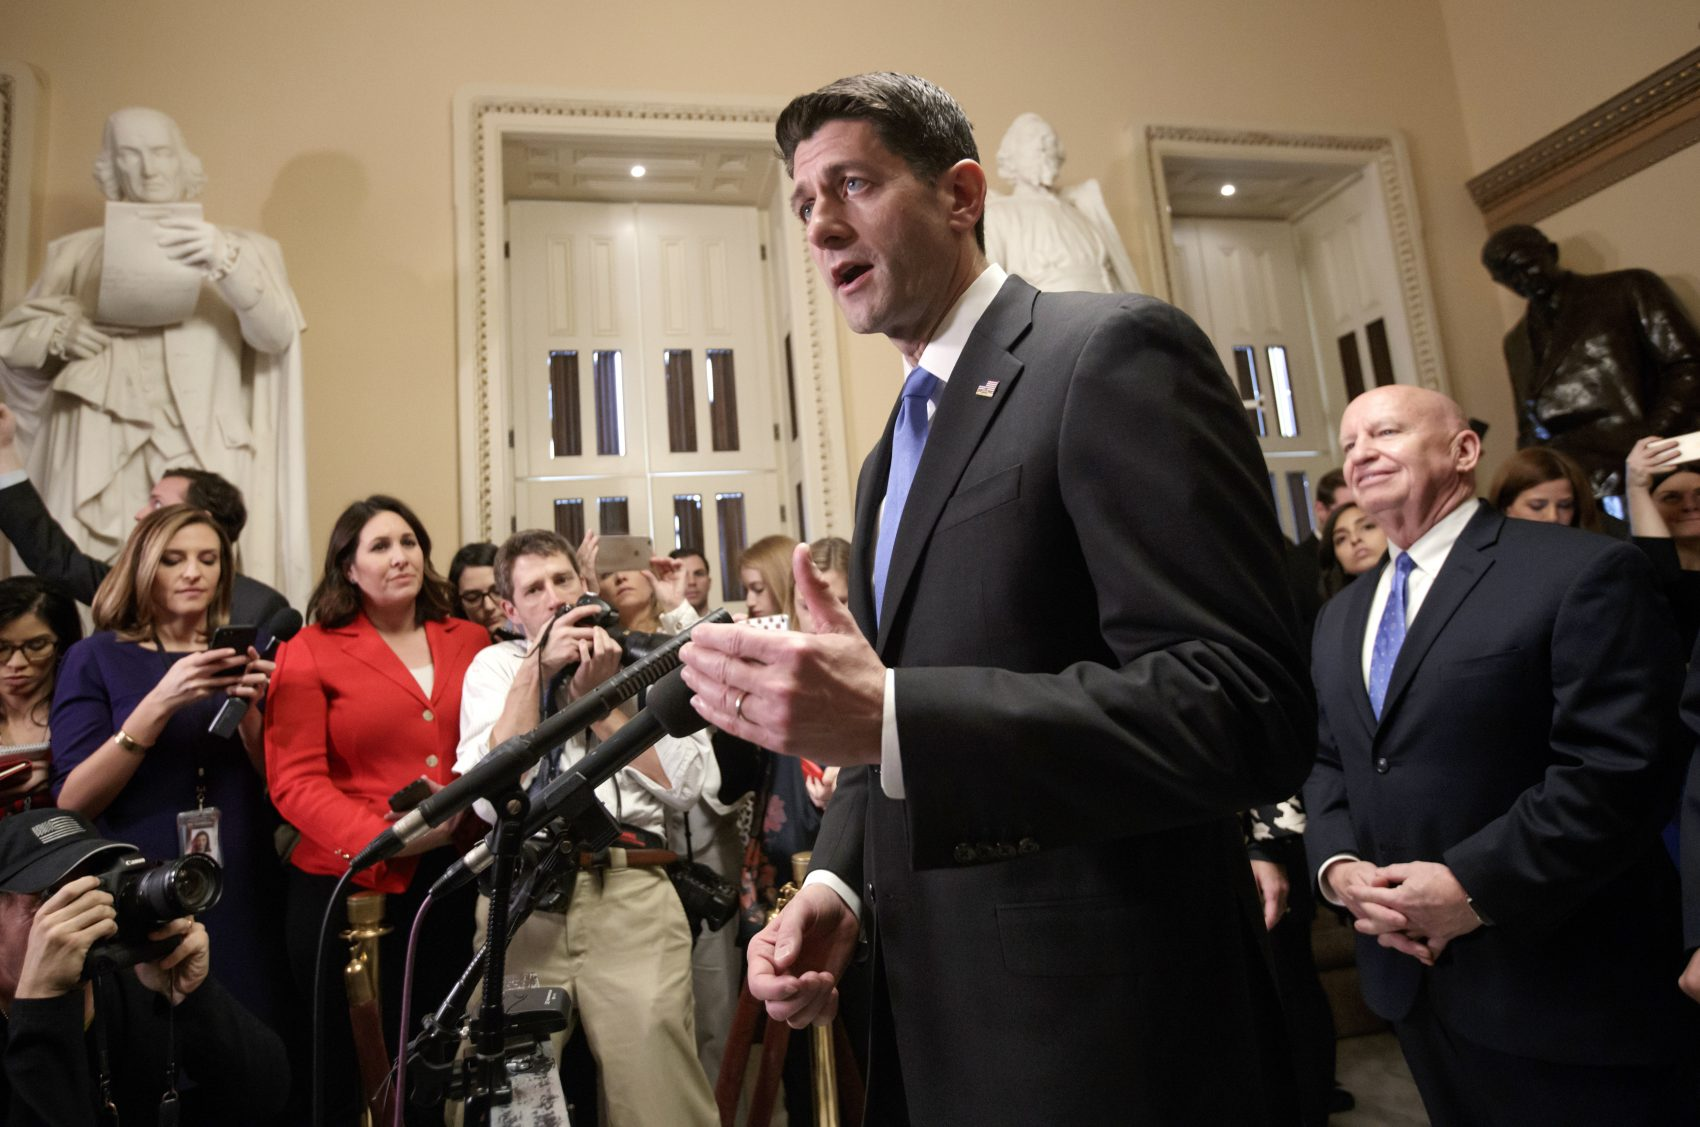 Speaker of the House Paul Ryan, R-Wis., joined at right by House Ways and Means Committee Chairman Kevin Brady, R-Texas, meets reporters just after passing the Republican tax reform bill in the House of Representatives, on Capitol Hill, in Washington, Tuesday, Dec. 19, 2017. The vote, largely along party lines, was 227-203 and capped a GOP sprint to deliver a major legislative accomplishment to President Donald Trump after a year of congressional stumbles. (J. Scott Applewhite/AP)